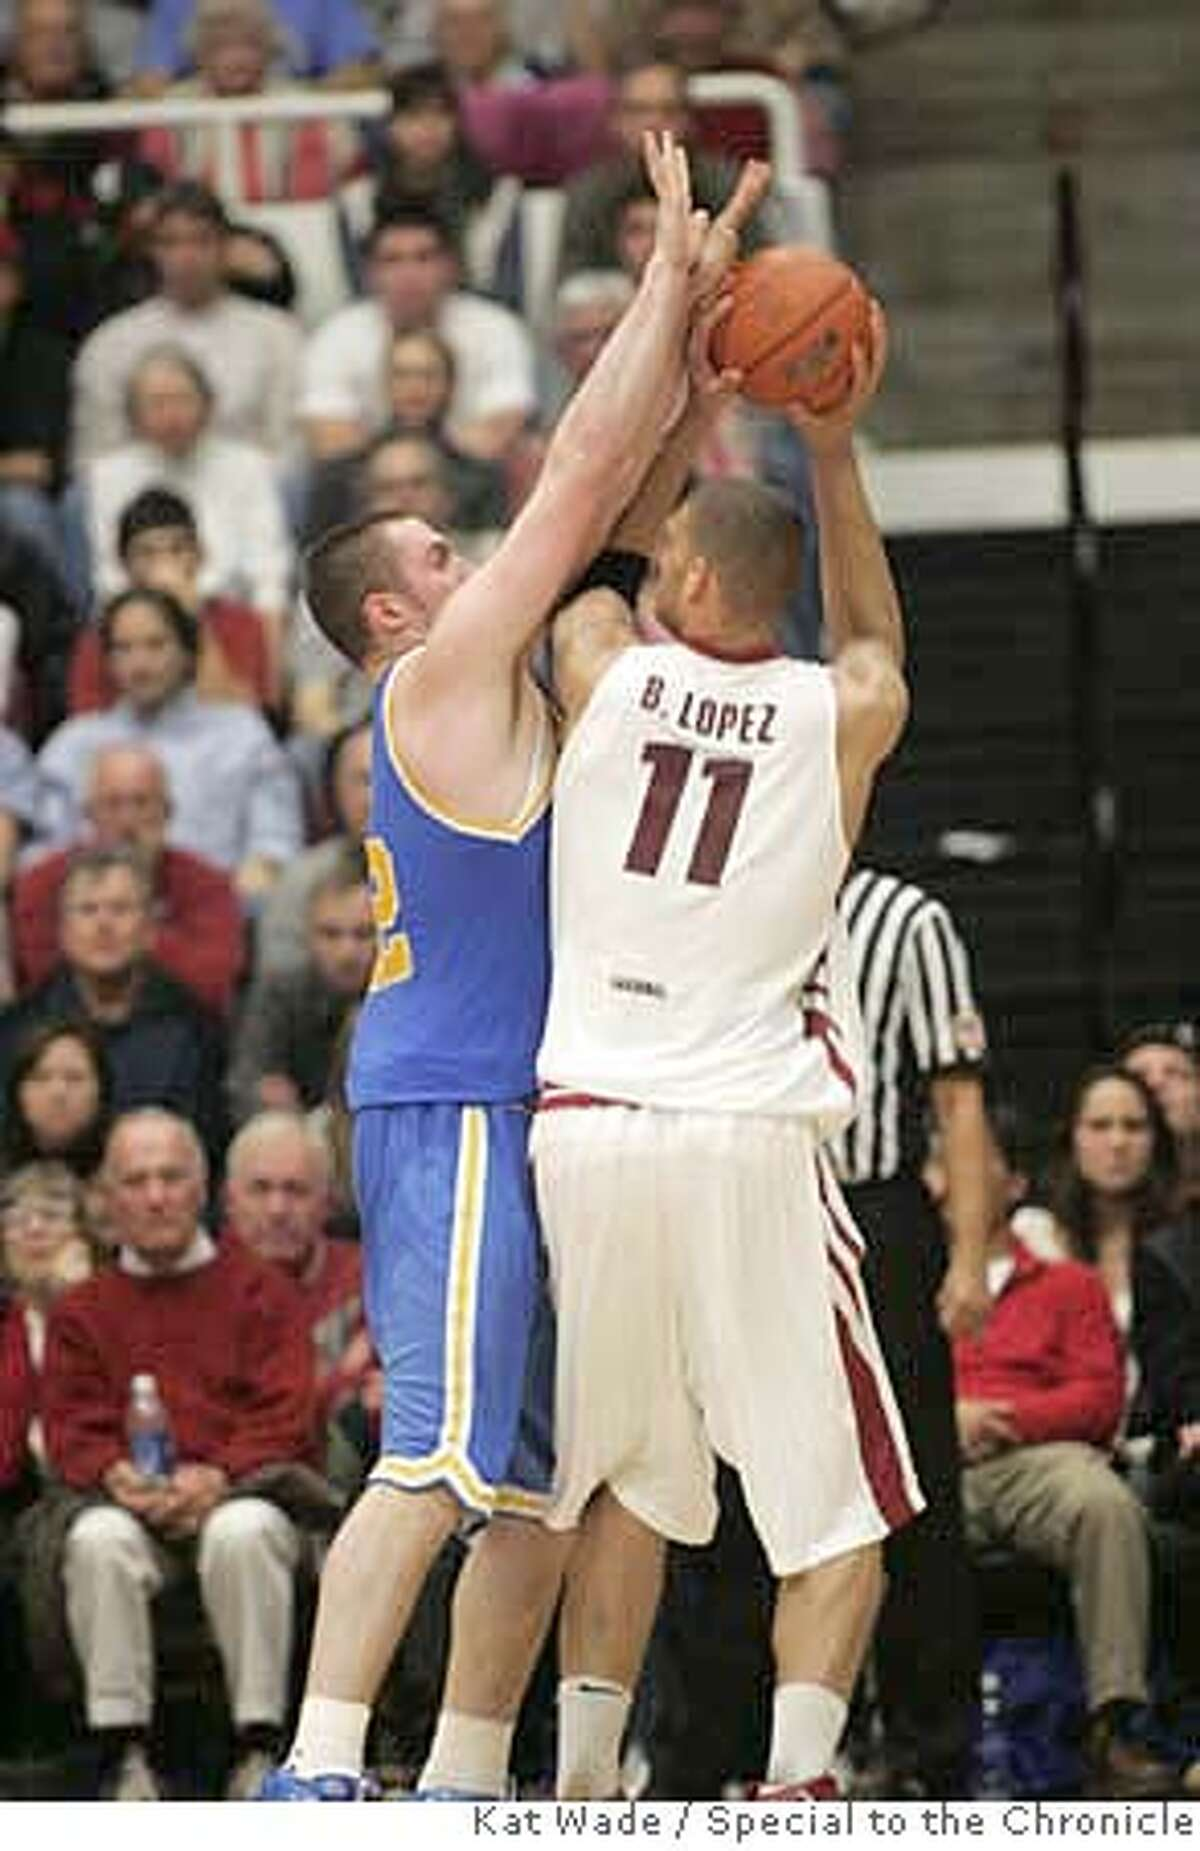 ###Live Caption:STANFORD_MEN_044_KW.JPG (L to R) UCLA's Kevin Love is fouled by Stanford's Brook Lopez while on defense when number 5 UCLA Bruins beat the the #24 Stanford Cardinals 76 to 67 during the second half of the PAC 10 conference on Thursday night 01/03/08 at Stanford's Maples Pavillion in Stanford, Ca . Photo by Kat Wade (CQ, Subject)###Caption History:STANFORD_MEN_044_KW.JPG (L to R) UCLA's Kevin Love is fouled by Stanford's Brook Lopez while on defense when number 5 UCLA Bruins beat the the #24 Stanford Cardinals 76 to 67 during the second half of the PAC 10 conference on Thursday night 01/03/08 at Stanford's Maples Pavillion in Stanford, Ca . Photo by Kat Wade (CQ, Subject)###Notes:415-609-9602###Special Instructions:Mandatory Credit for photographer, Kat Wade